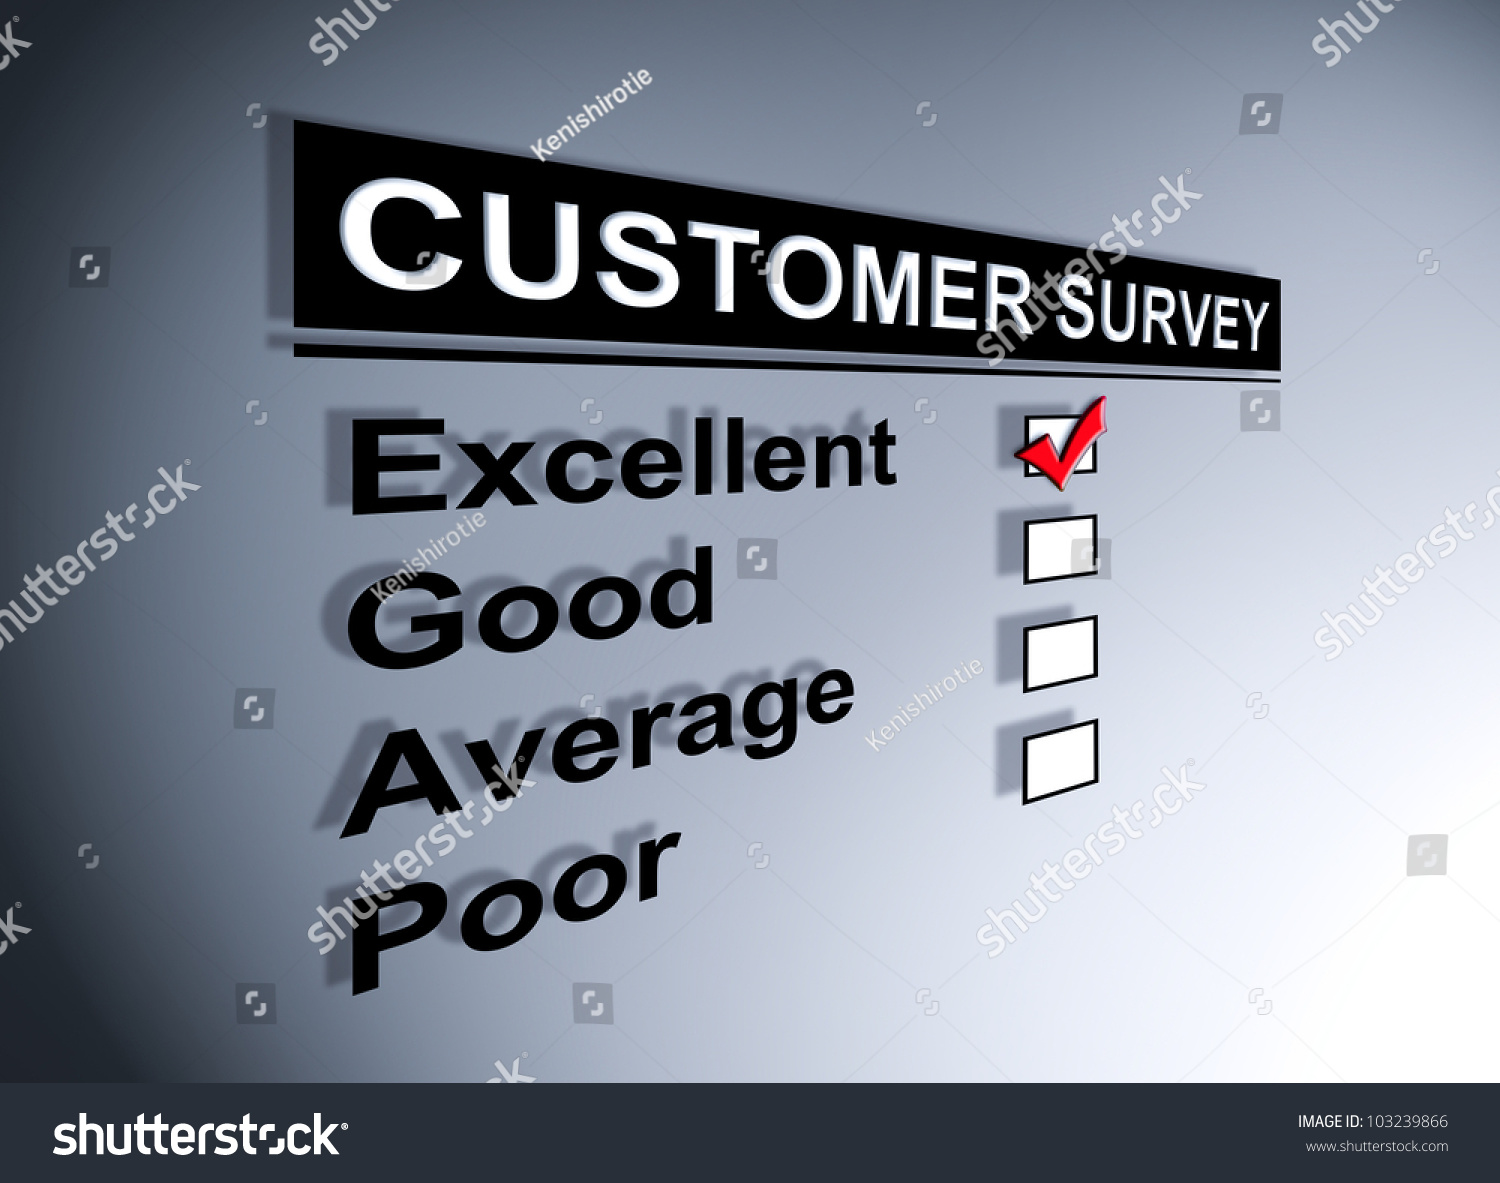 Excellent Experience Checkbox Ticked In Customer Service Survey Form Stock Photo